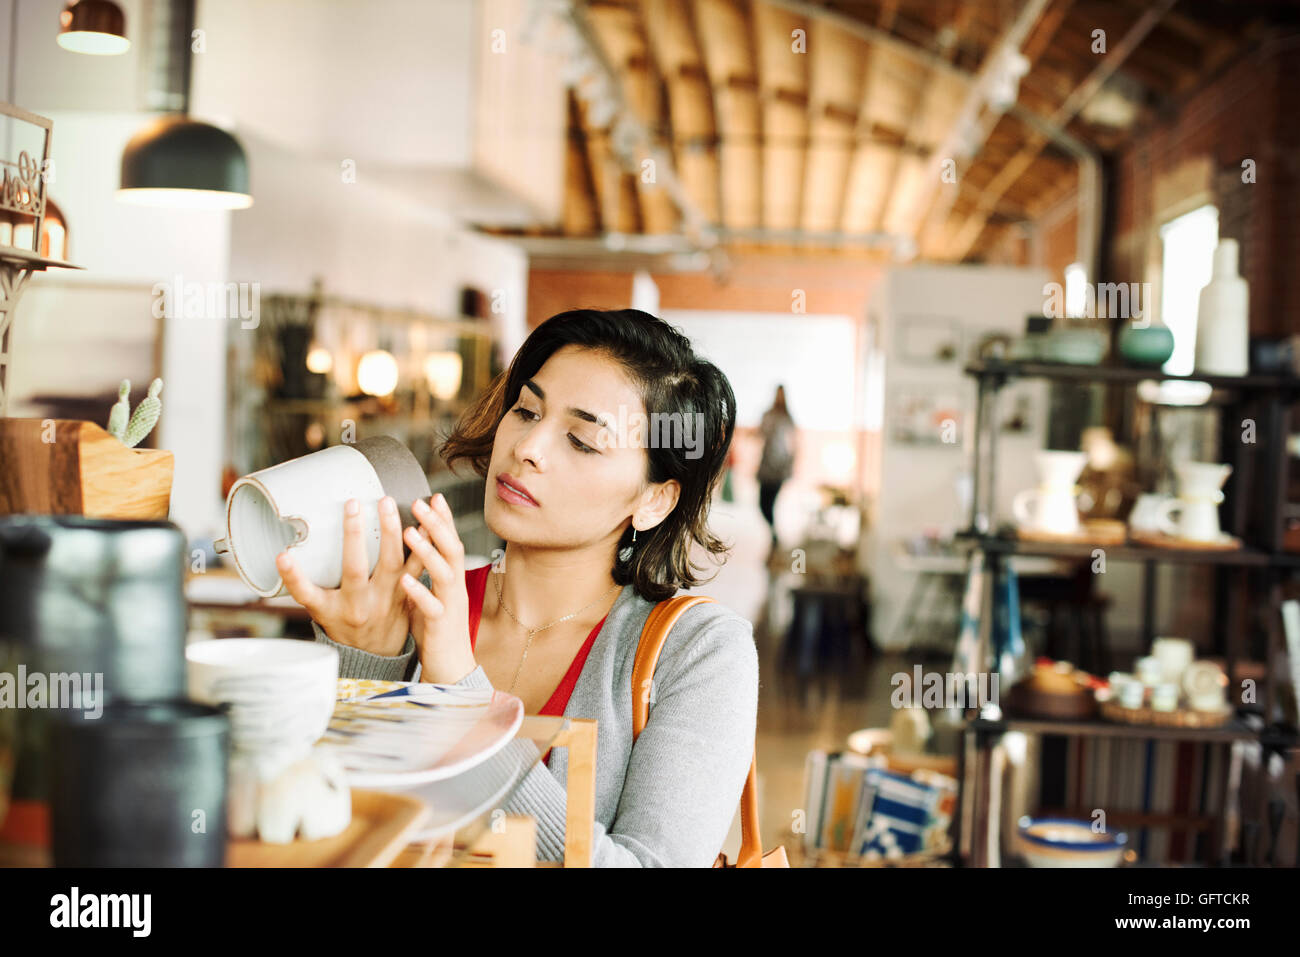 Young woman in a shop looking at a ceramic jug - Stock Image